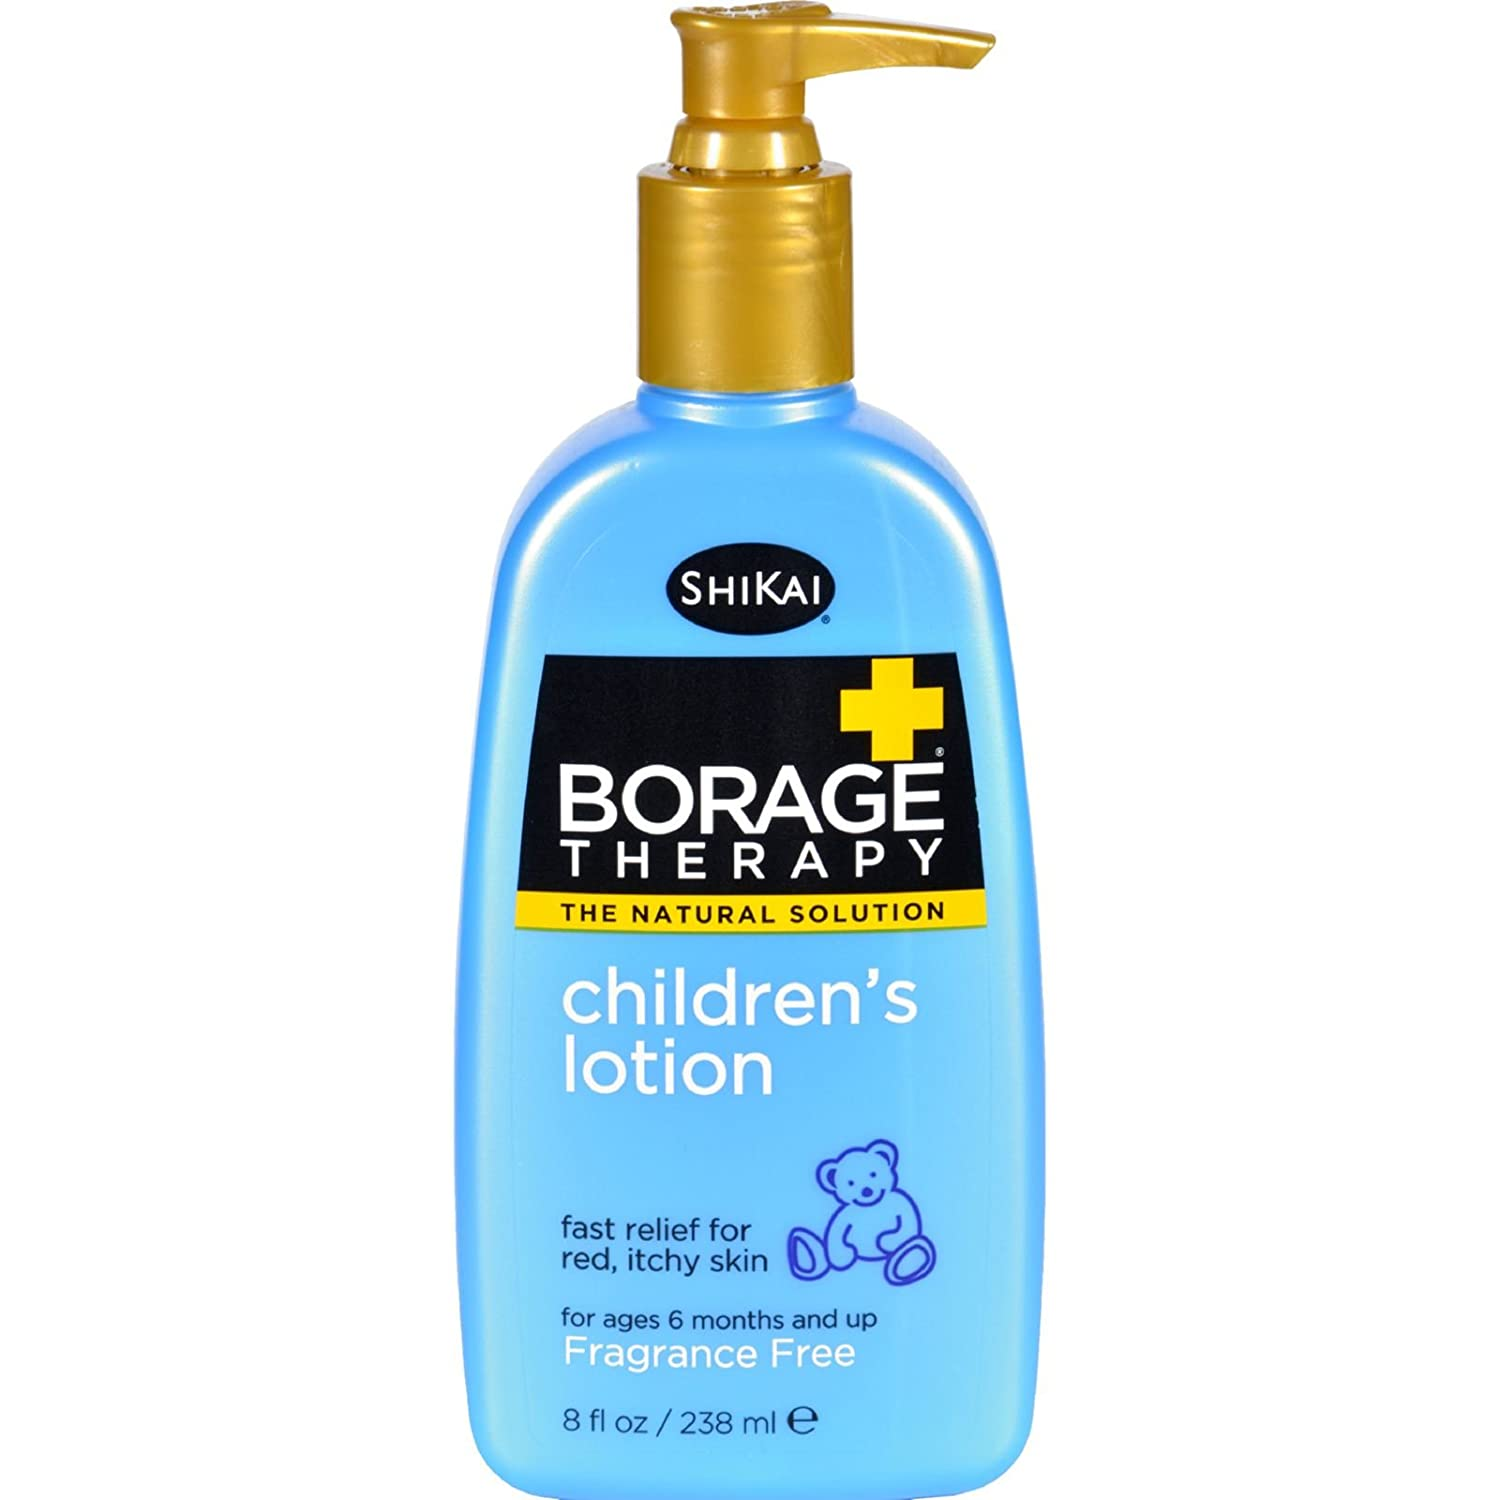 ShiKai Borage Therapy-Childrens Lotion, Fragrance Free, 8-Ounce 40201